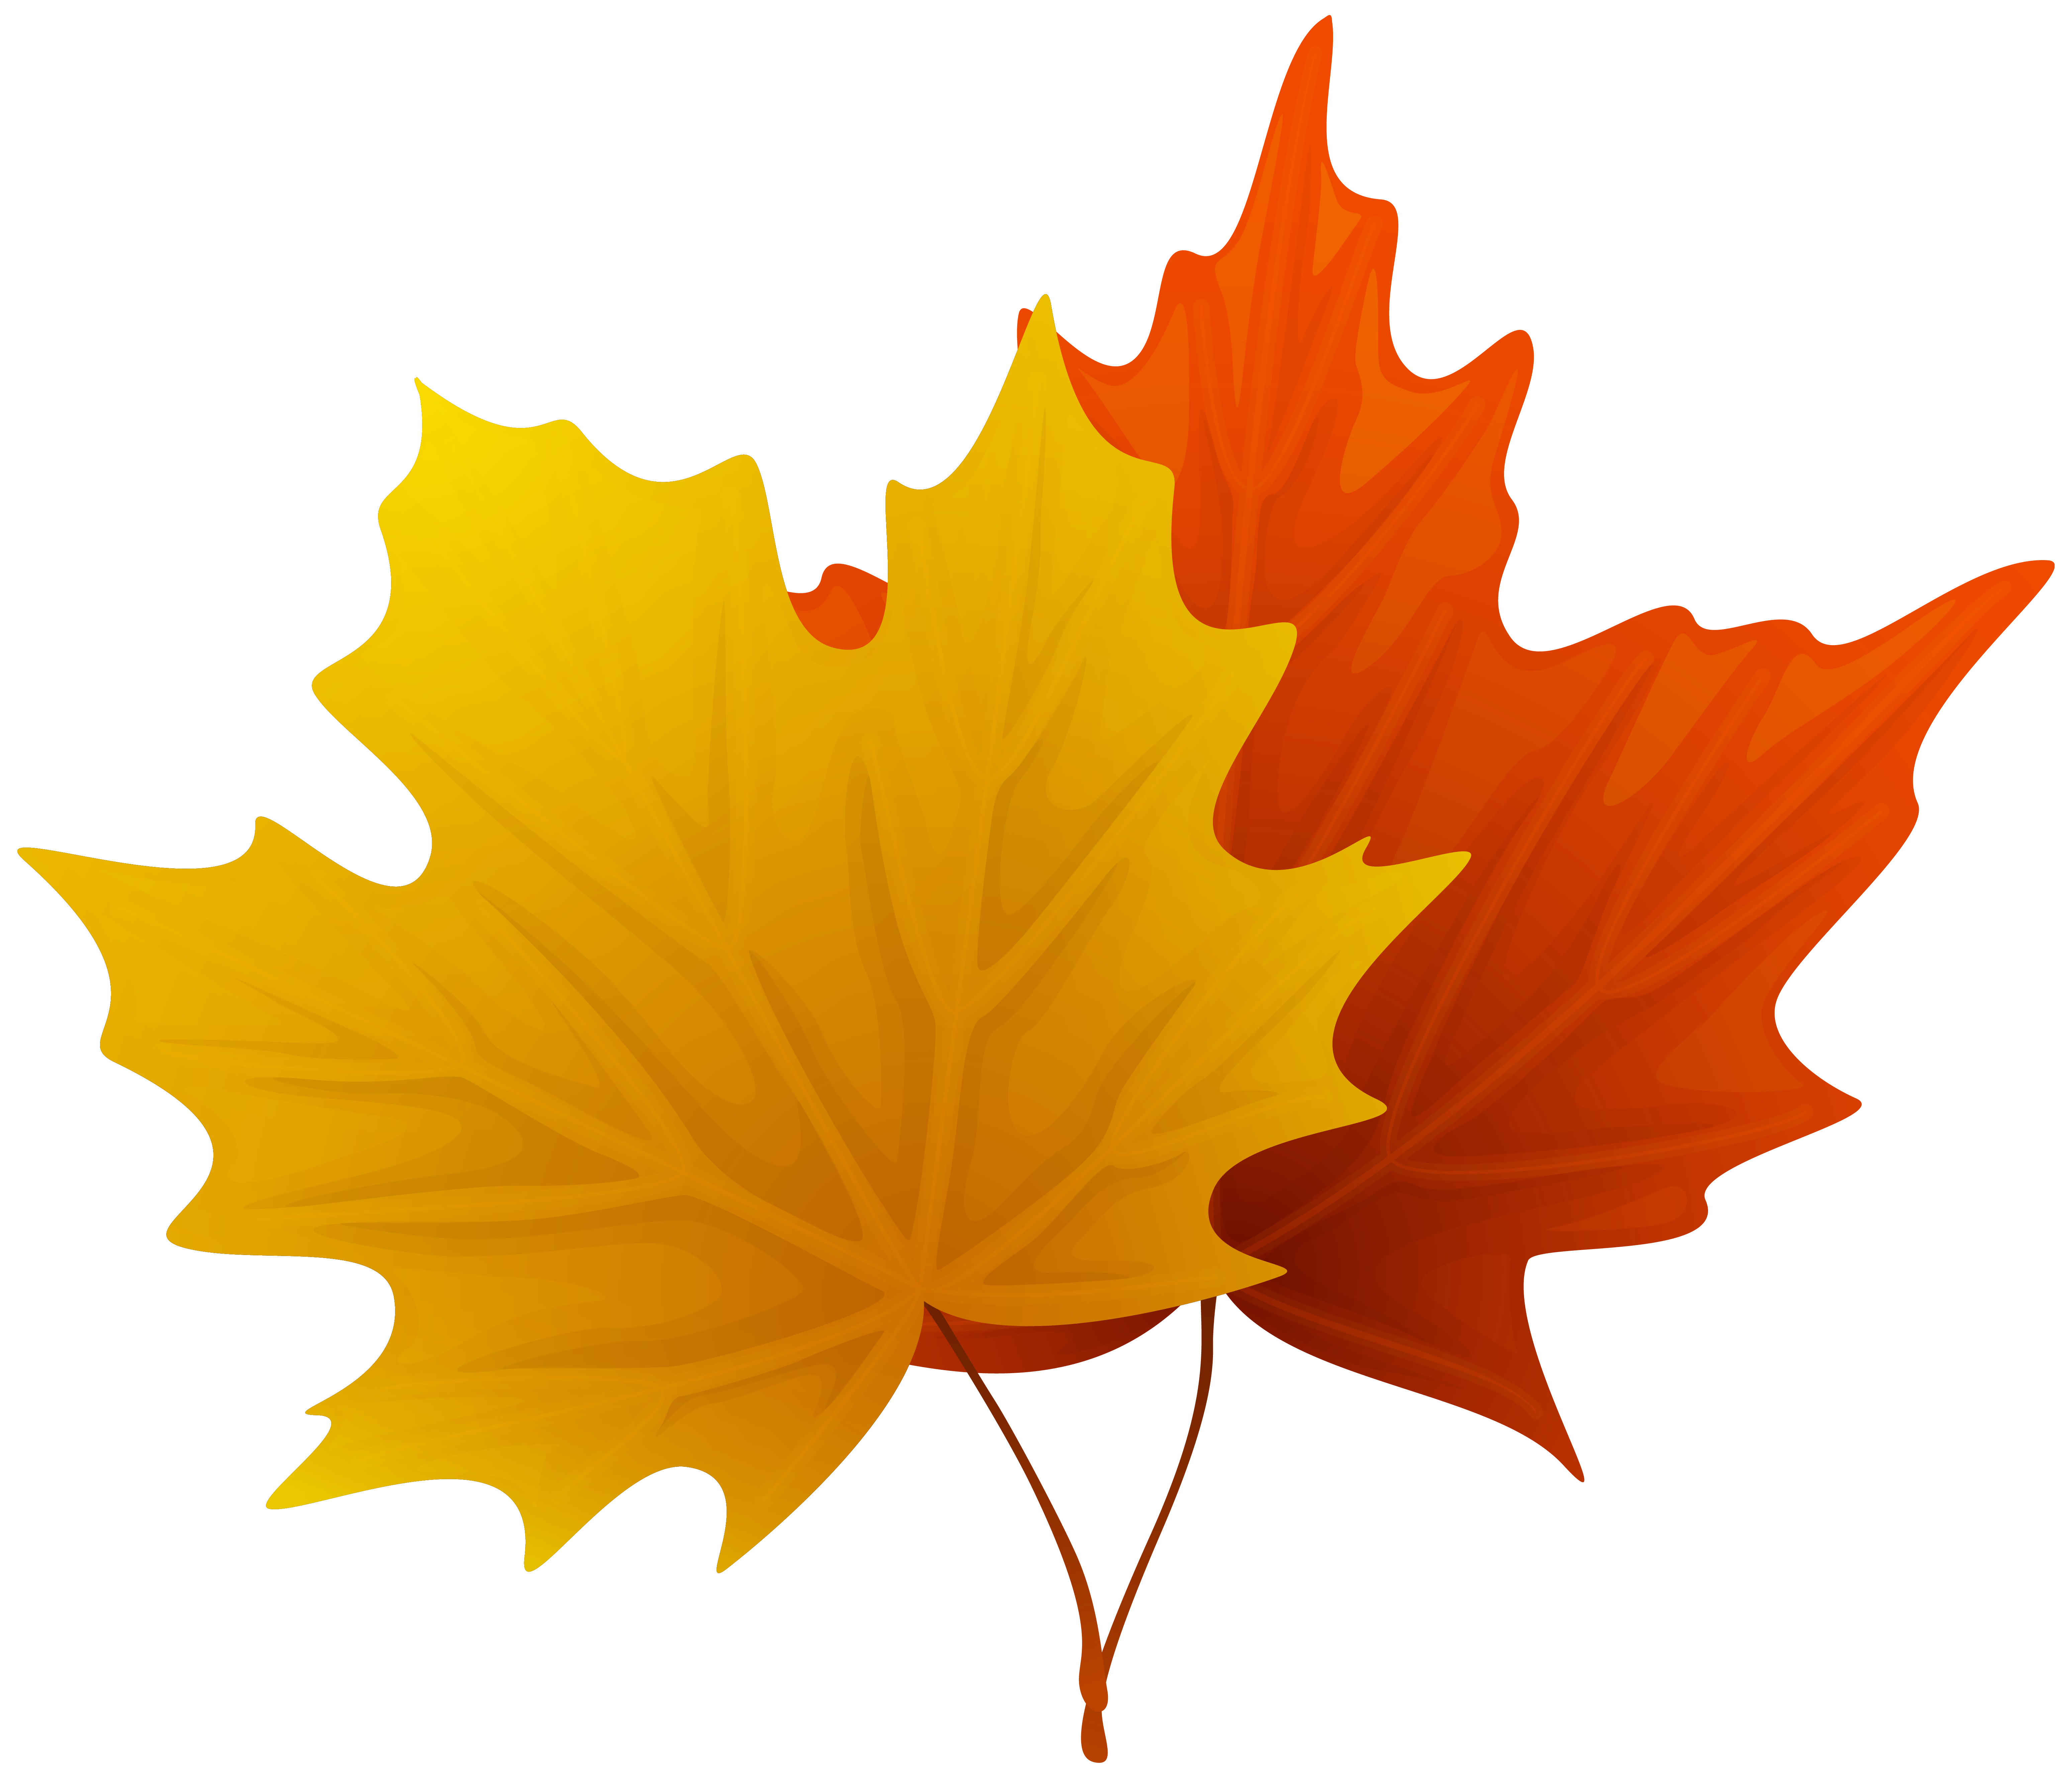 6194x5314 Maple Leaf Fall Maple Leaves Decorative Clipart Image